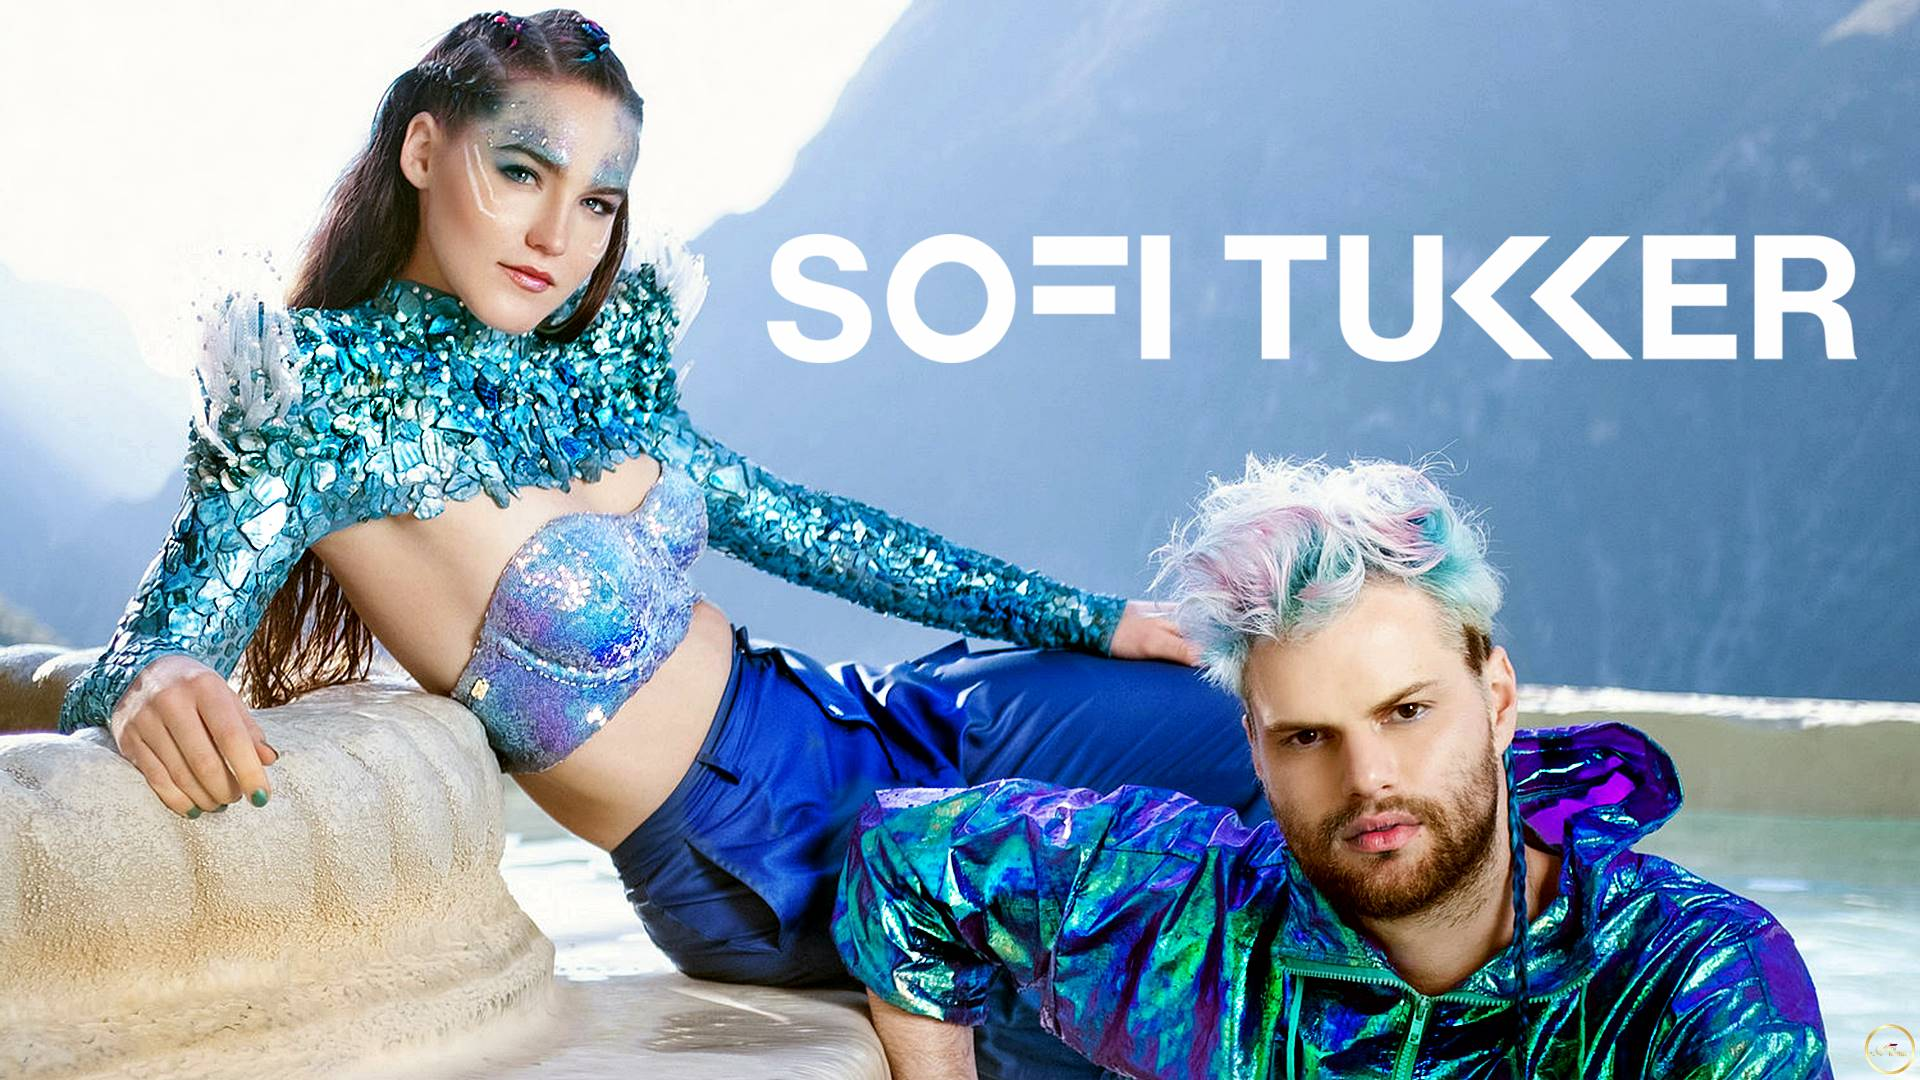 Adagio TV Russia presents:  Sofi Tukker